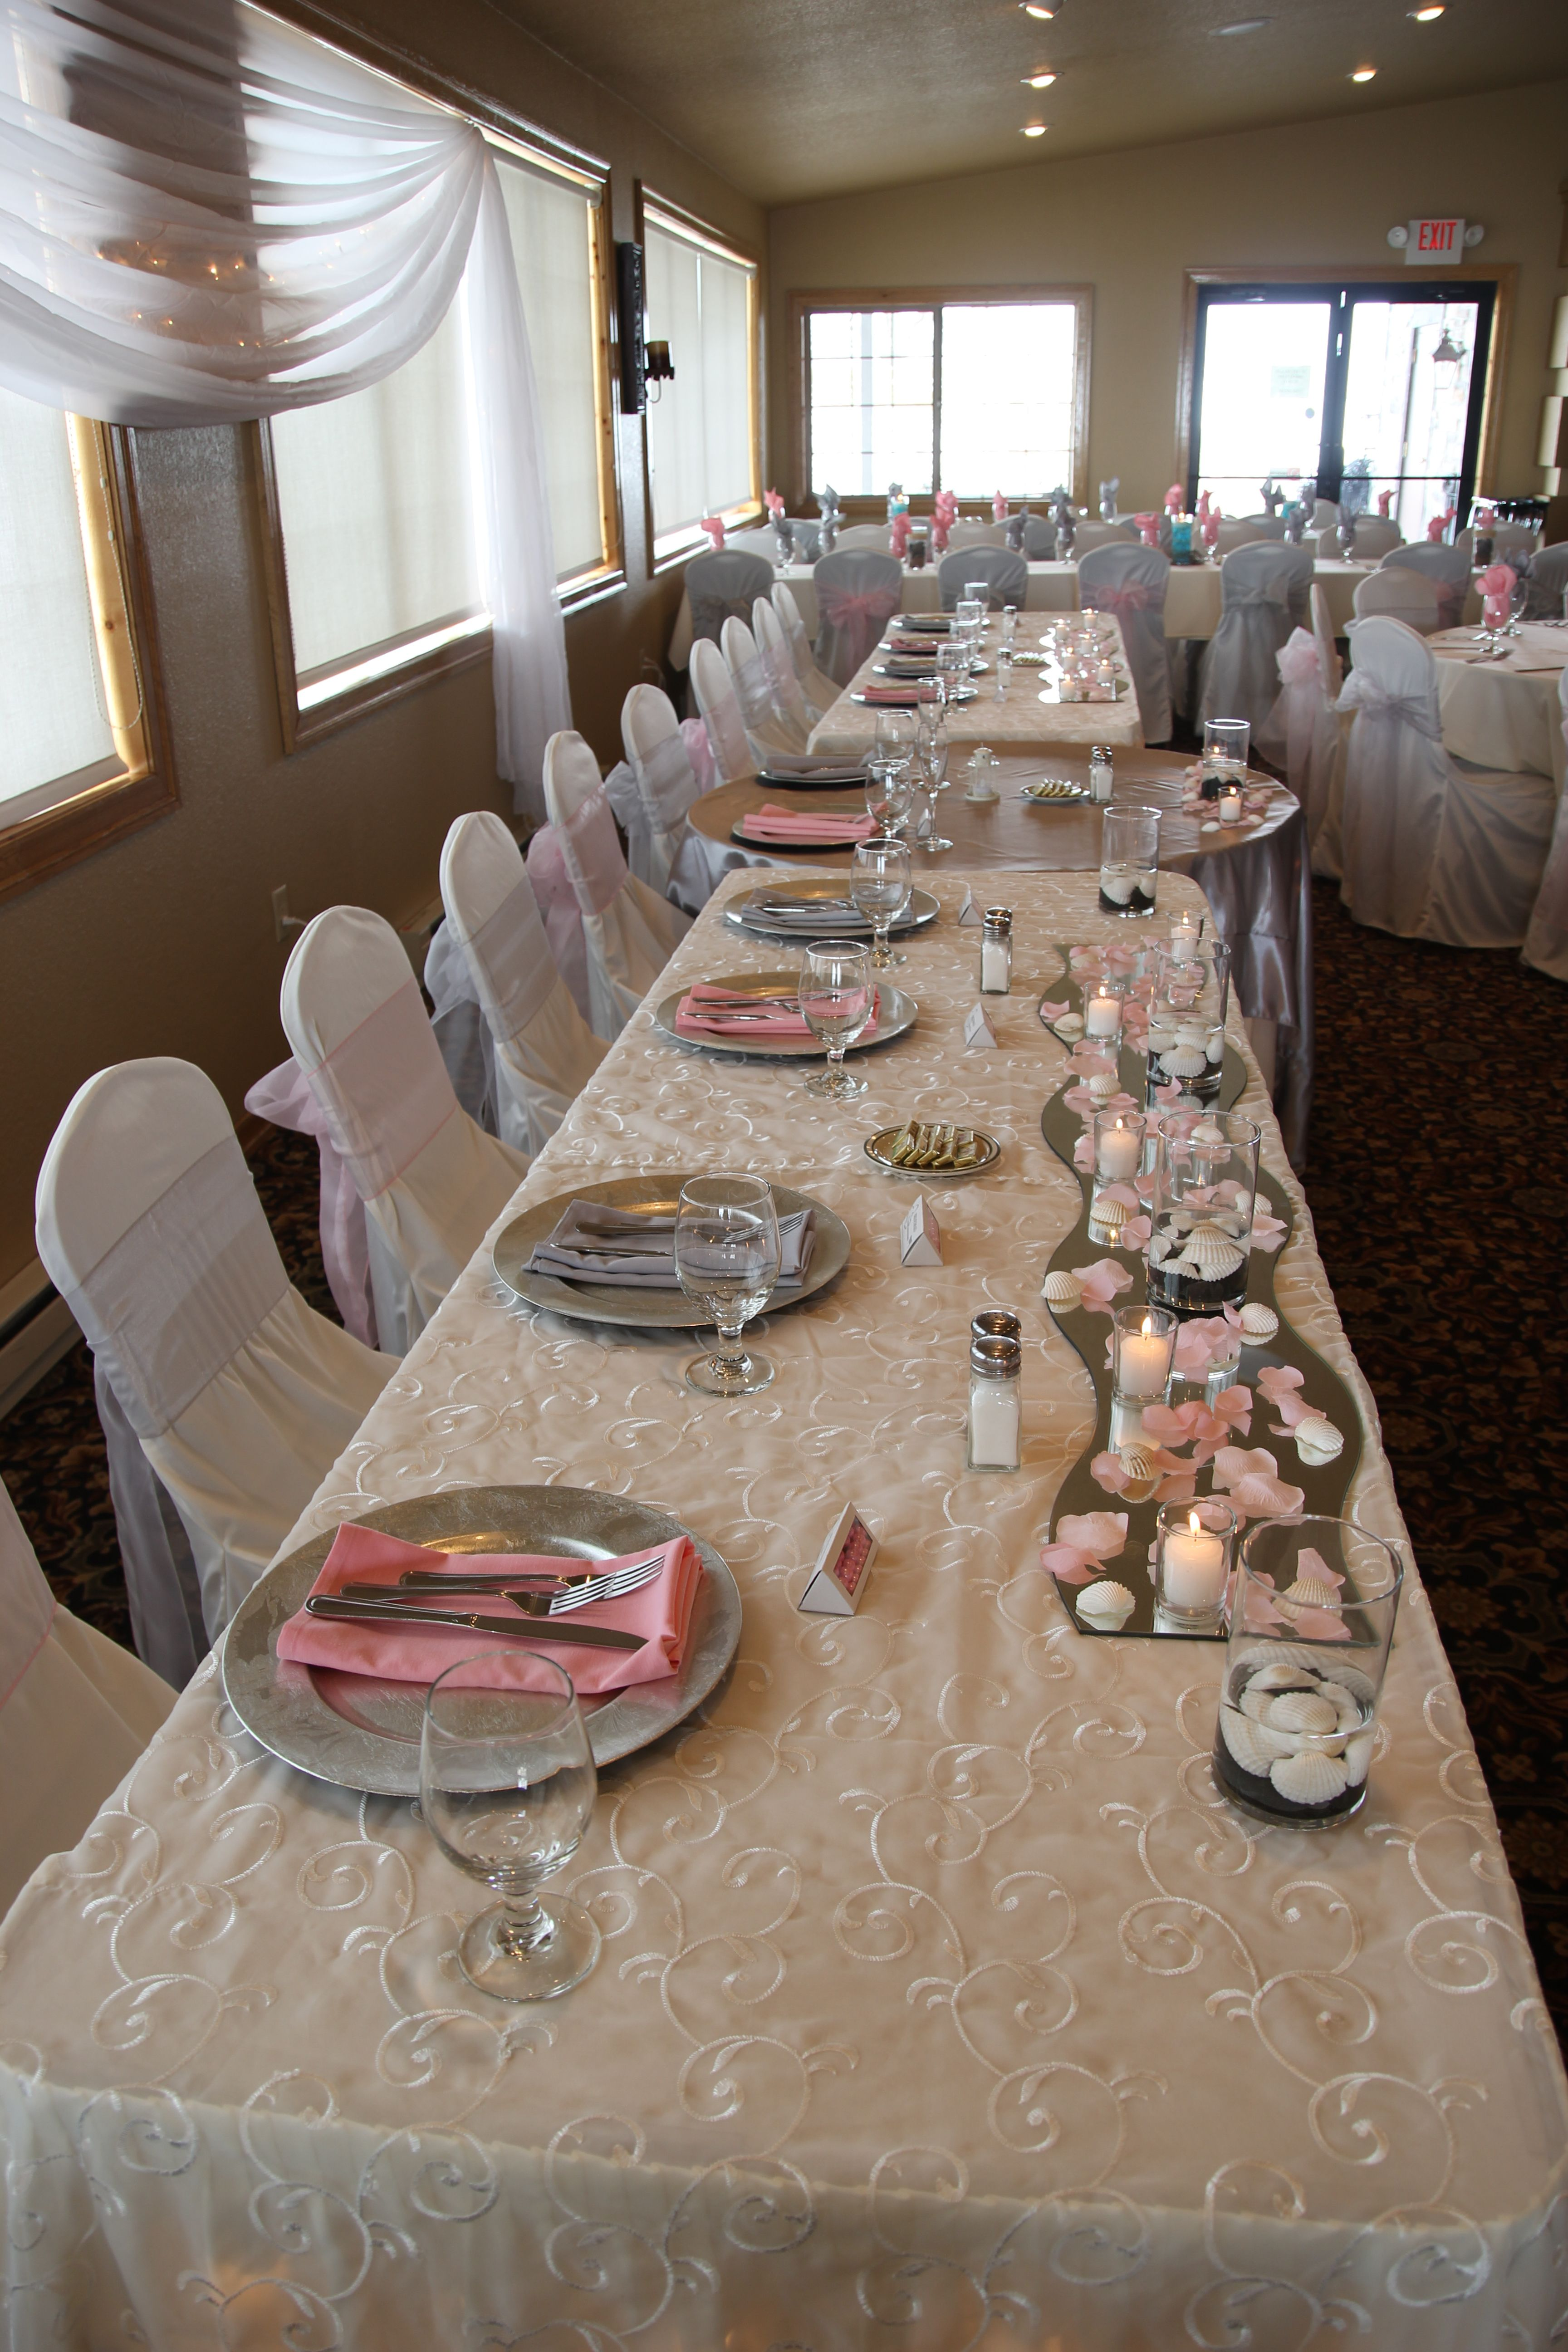 Chair Covers For Weddings Pinterest Oxblood Leather Wing Blush And Lace Designerweddings Head Tables By Designer Specializes In Full Service Custom Wedding Event Decorating Ceiling Draping Linens Lighing Rentals